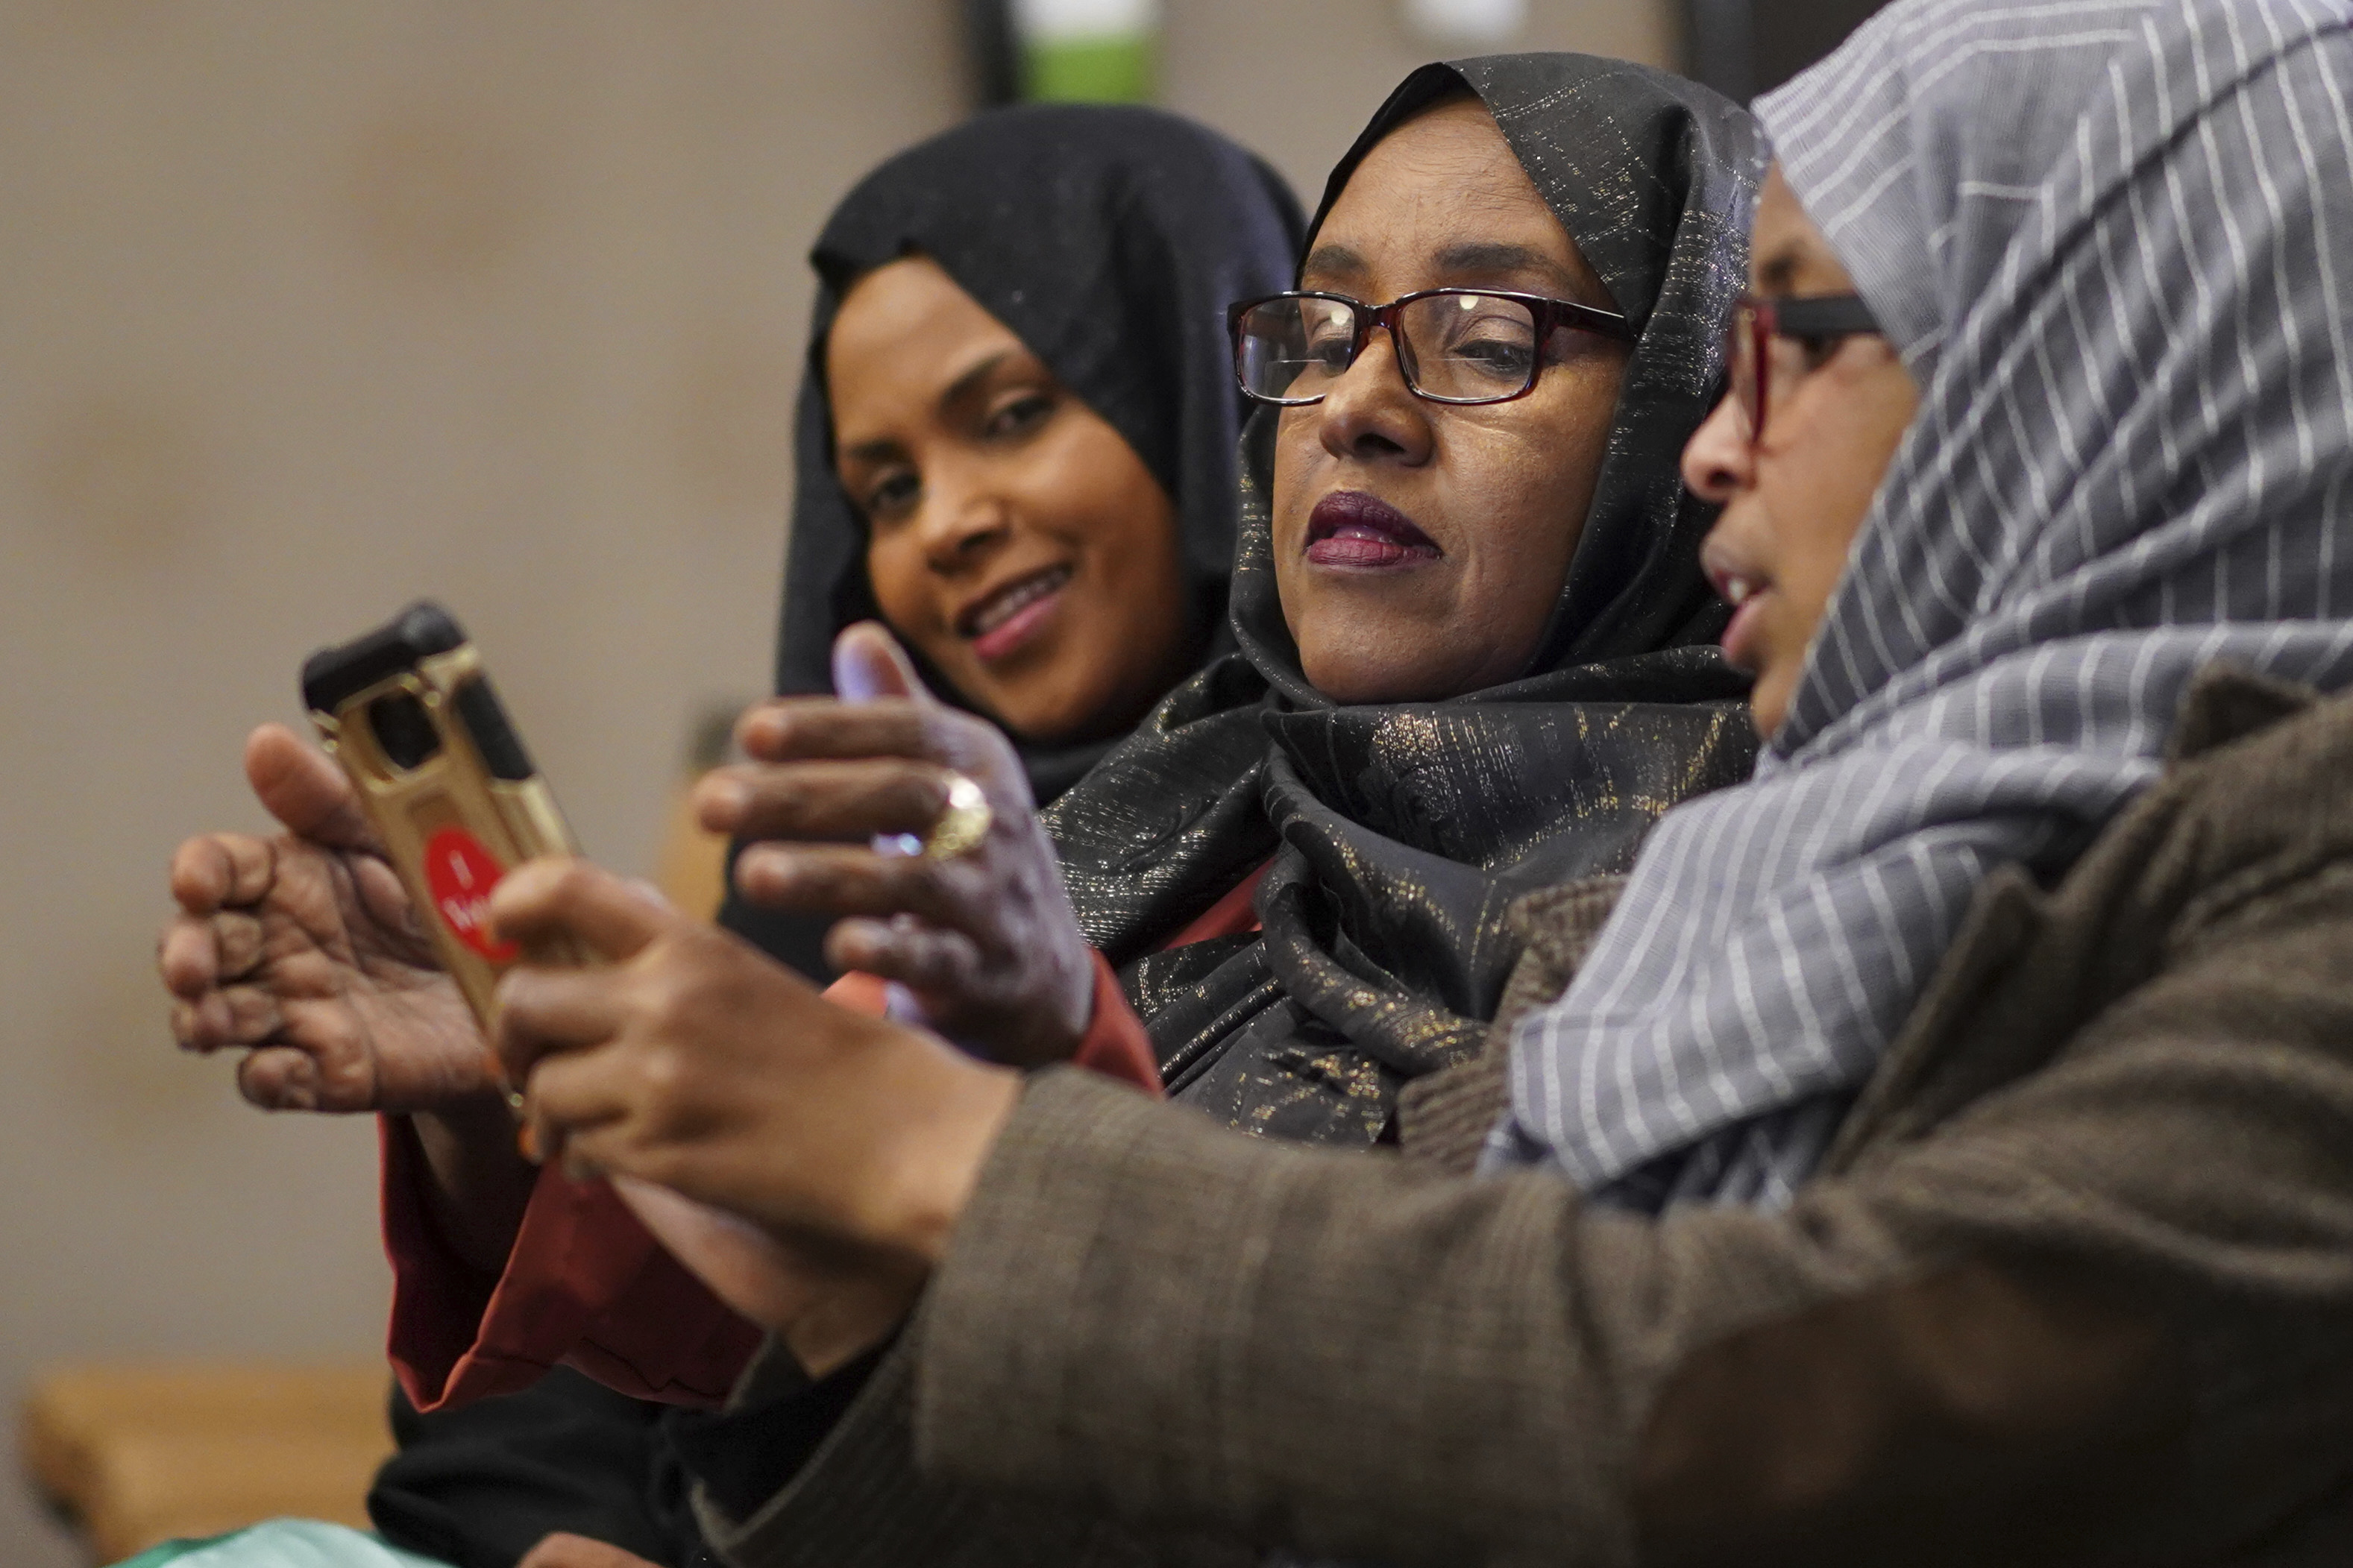 Hibo Omar, Muhubo Shire and Kin Kyani watch results at Democratic congressional candidate Ilhan Omar's election night headquarters in Minneapolis on Tuesday, Nov. 6, 2018. State Rep. Ilhan Omar has won Minnesota's 5th District race to become the first Somali-American and one of the first Muslim women elected to Congress. (Mark Vancleave/Star Tribune via AP)